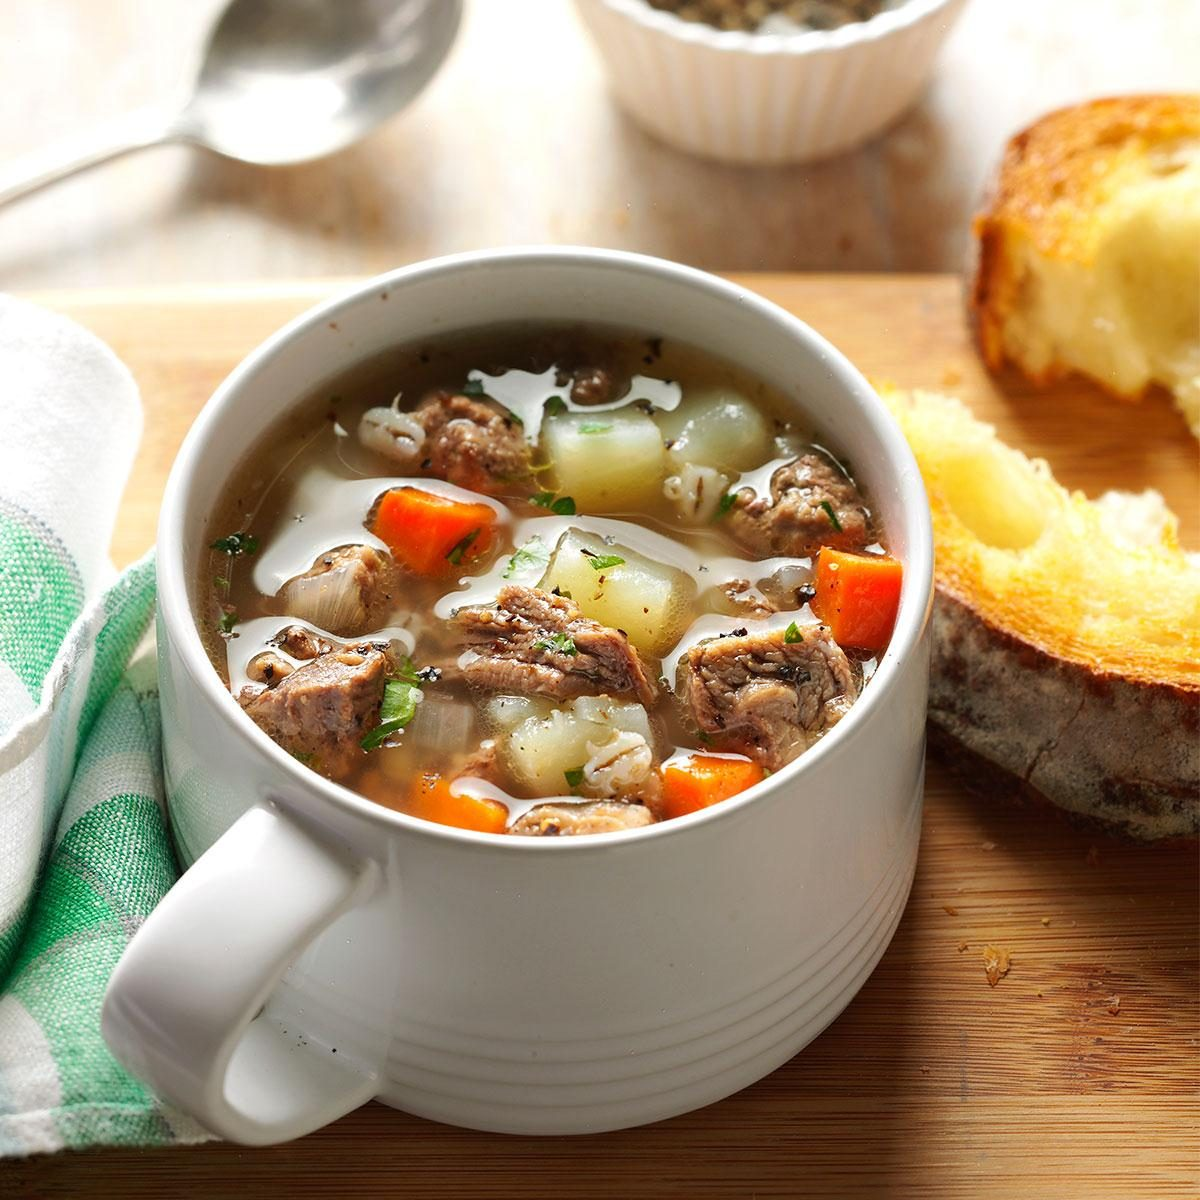 8 More Delicious And Easy Ground Beef Dinner Ideas: Ground Beef Barley Soup Recipe